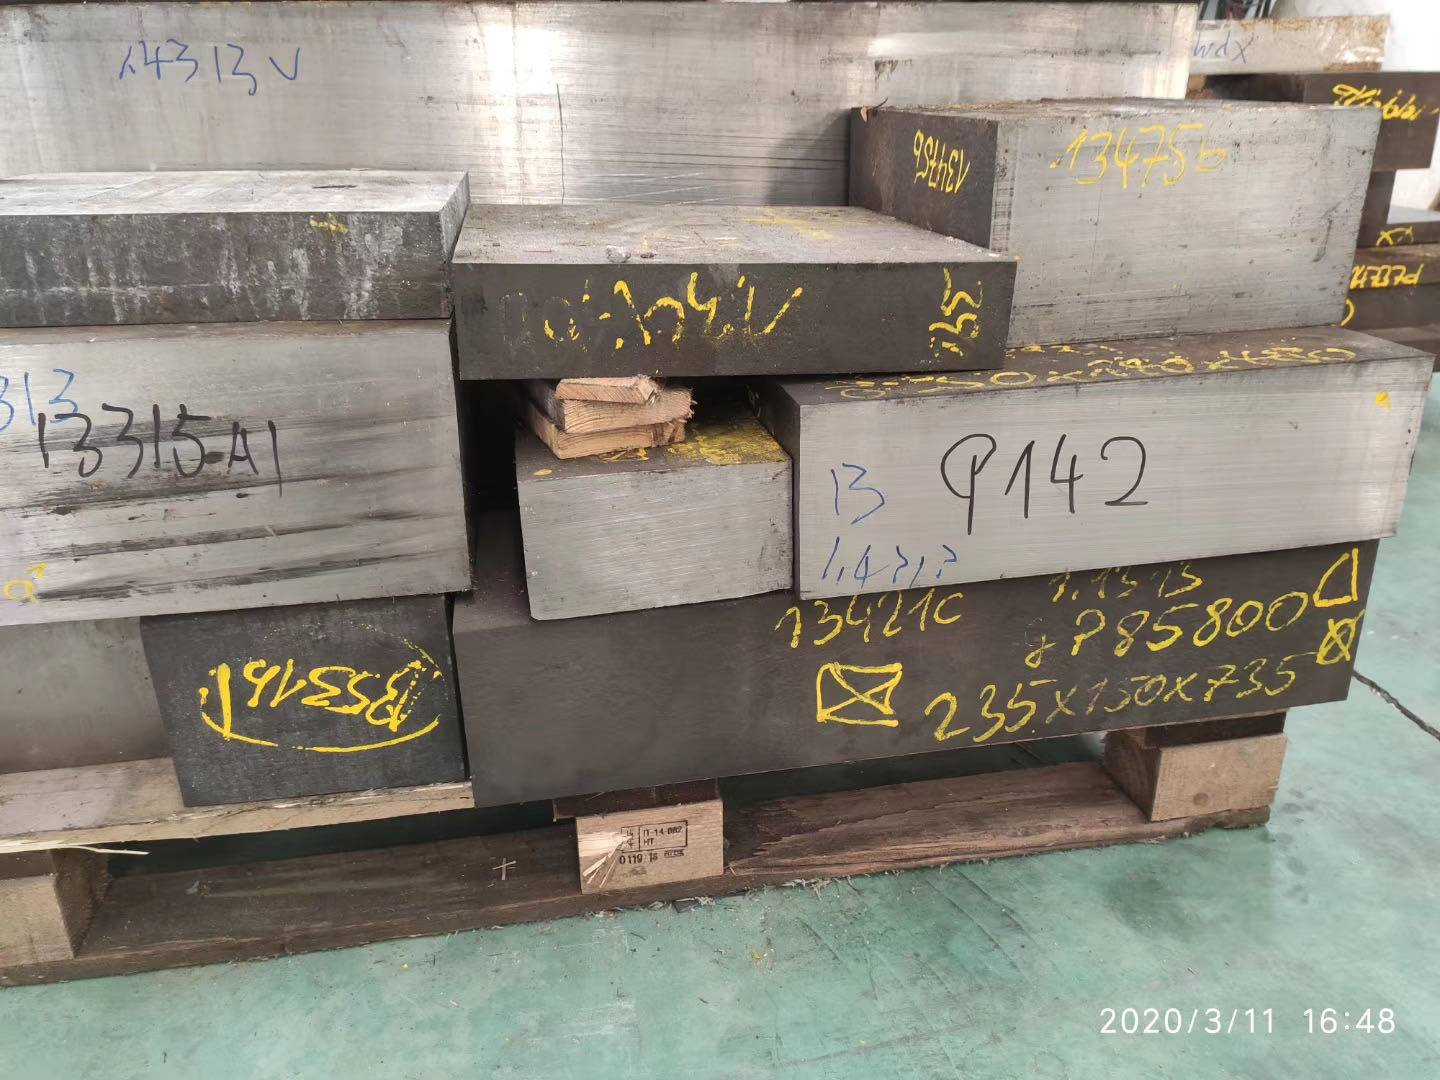 Tool Steel block 1.4313/AISI 415 Germany Origin Featured Image